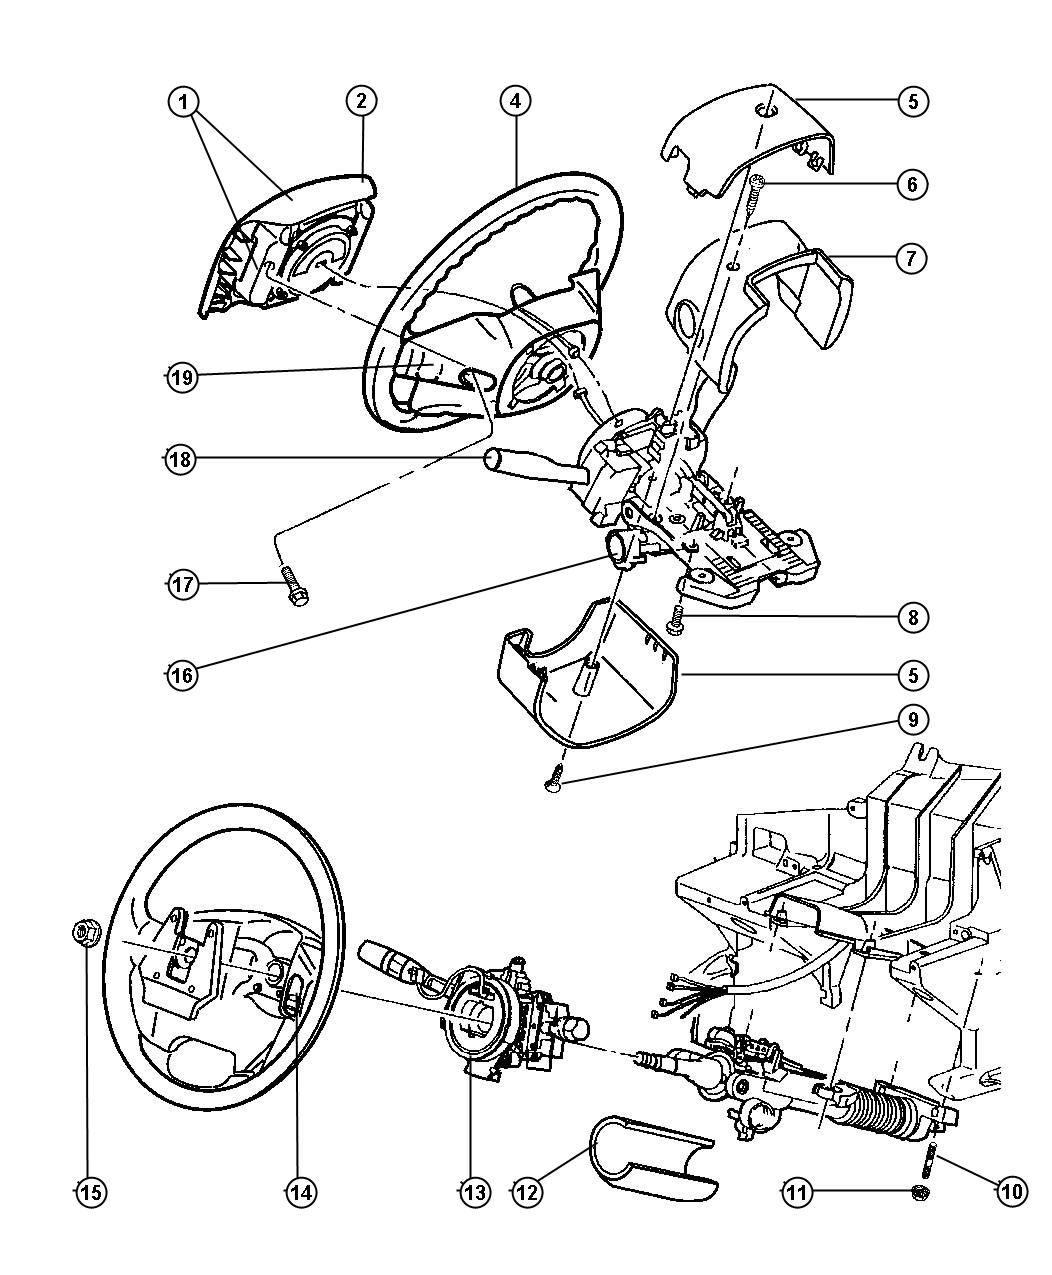 New Genuine Mopar 04686665Ad Immobilizer Module For Wrangler with regard to Chrysler Town And Country Parts Diagram